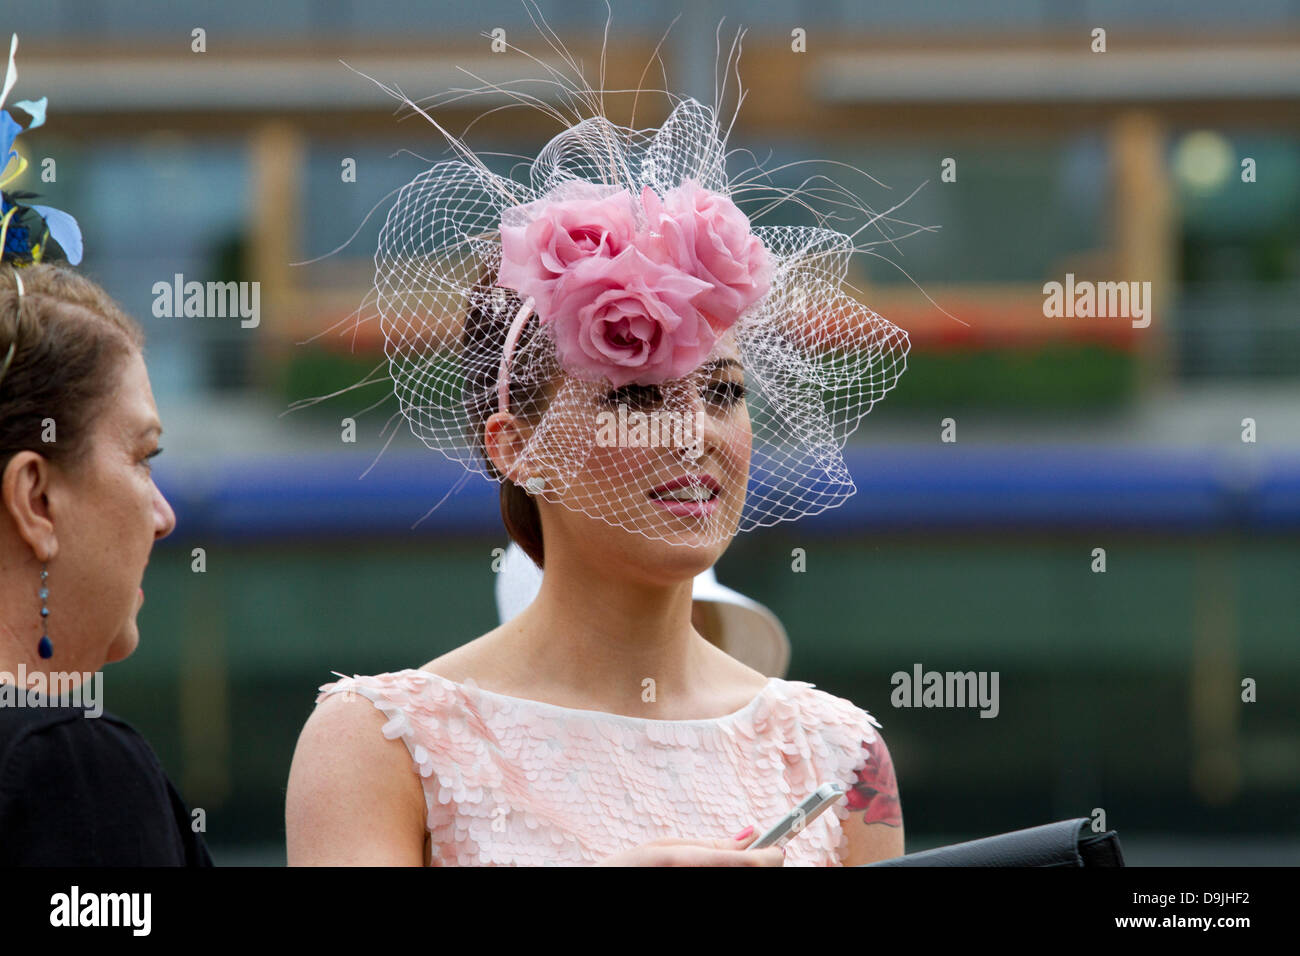 Ascot, Berkshire, UK. 20th June 2013. Third day of Royal Ascot is traditionally known as ladies day. The Ladies - Stock Image